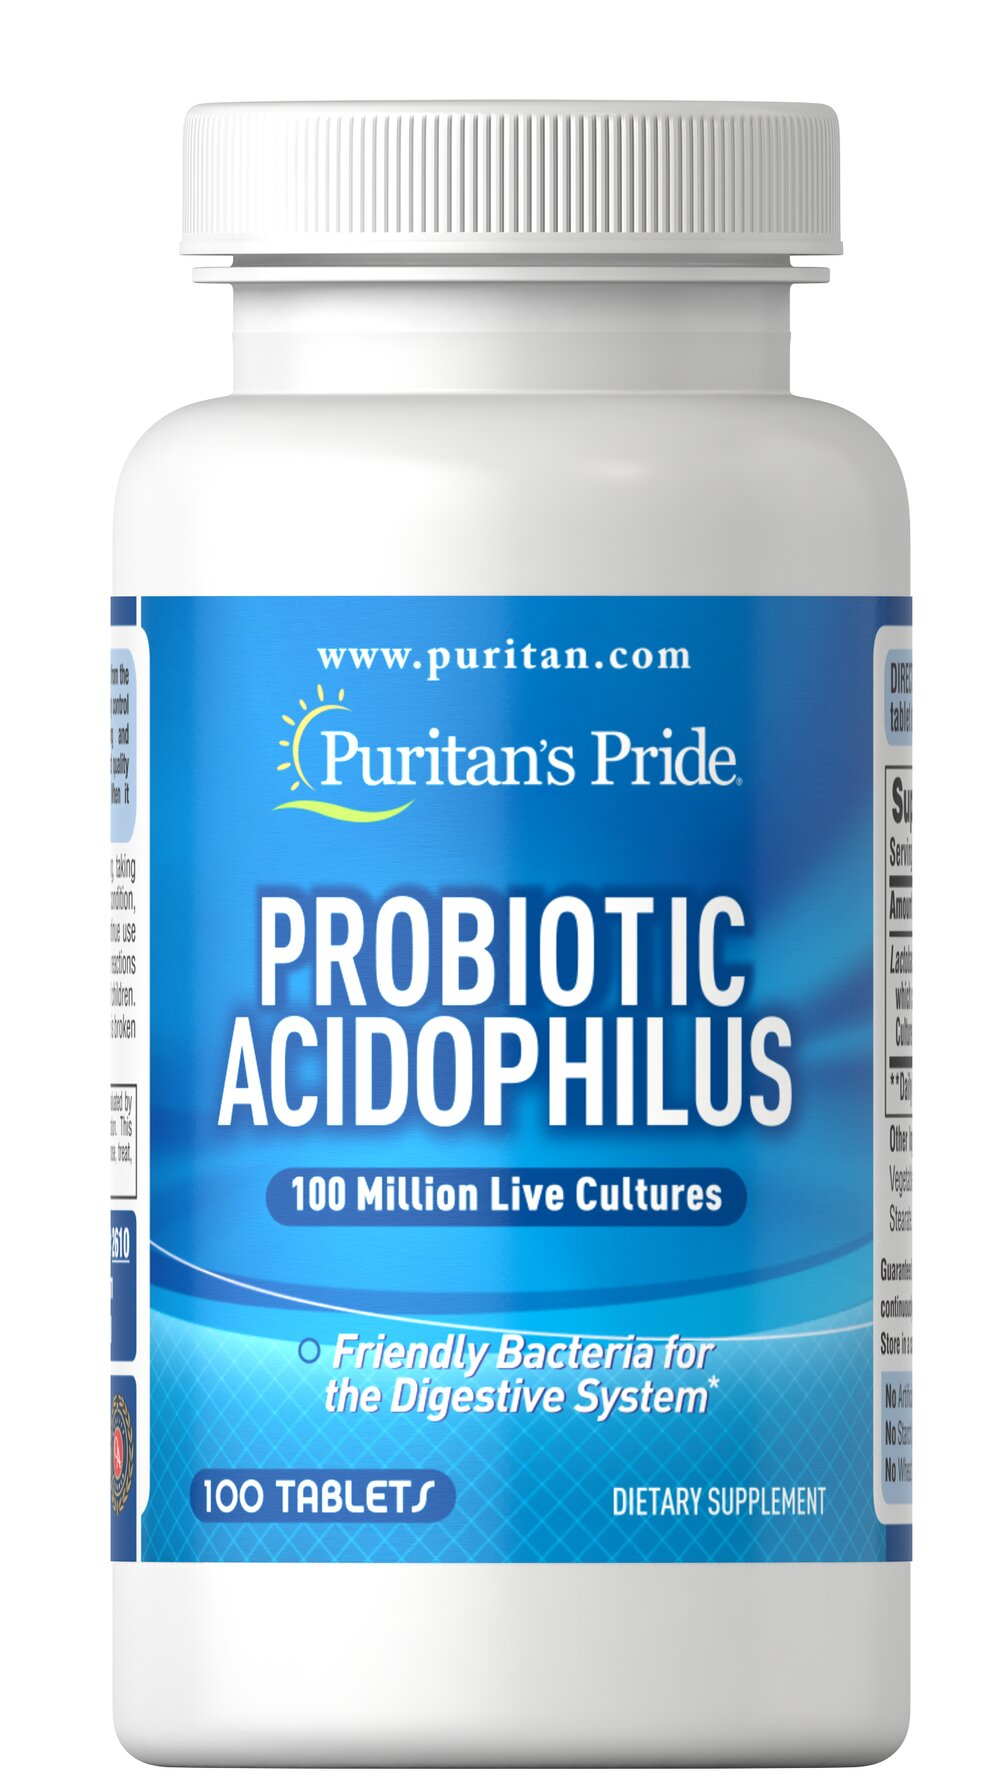 Probiotic Acidophilus <p>Acidophilus is a friendly bacteria for digestive system and supports overall well-being.  ** Our Probiotic Acidophilus contains over 100 million active Lactobacillus Acidophilus (including the naturally occurring metabolic product produced by Lactobacilli) at the time of manufacture.</p> 100 Capsules  $6.73